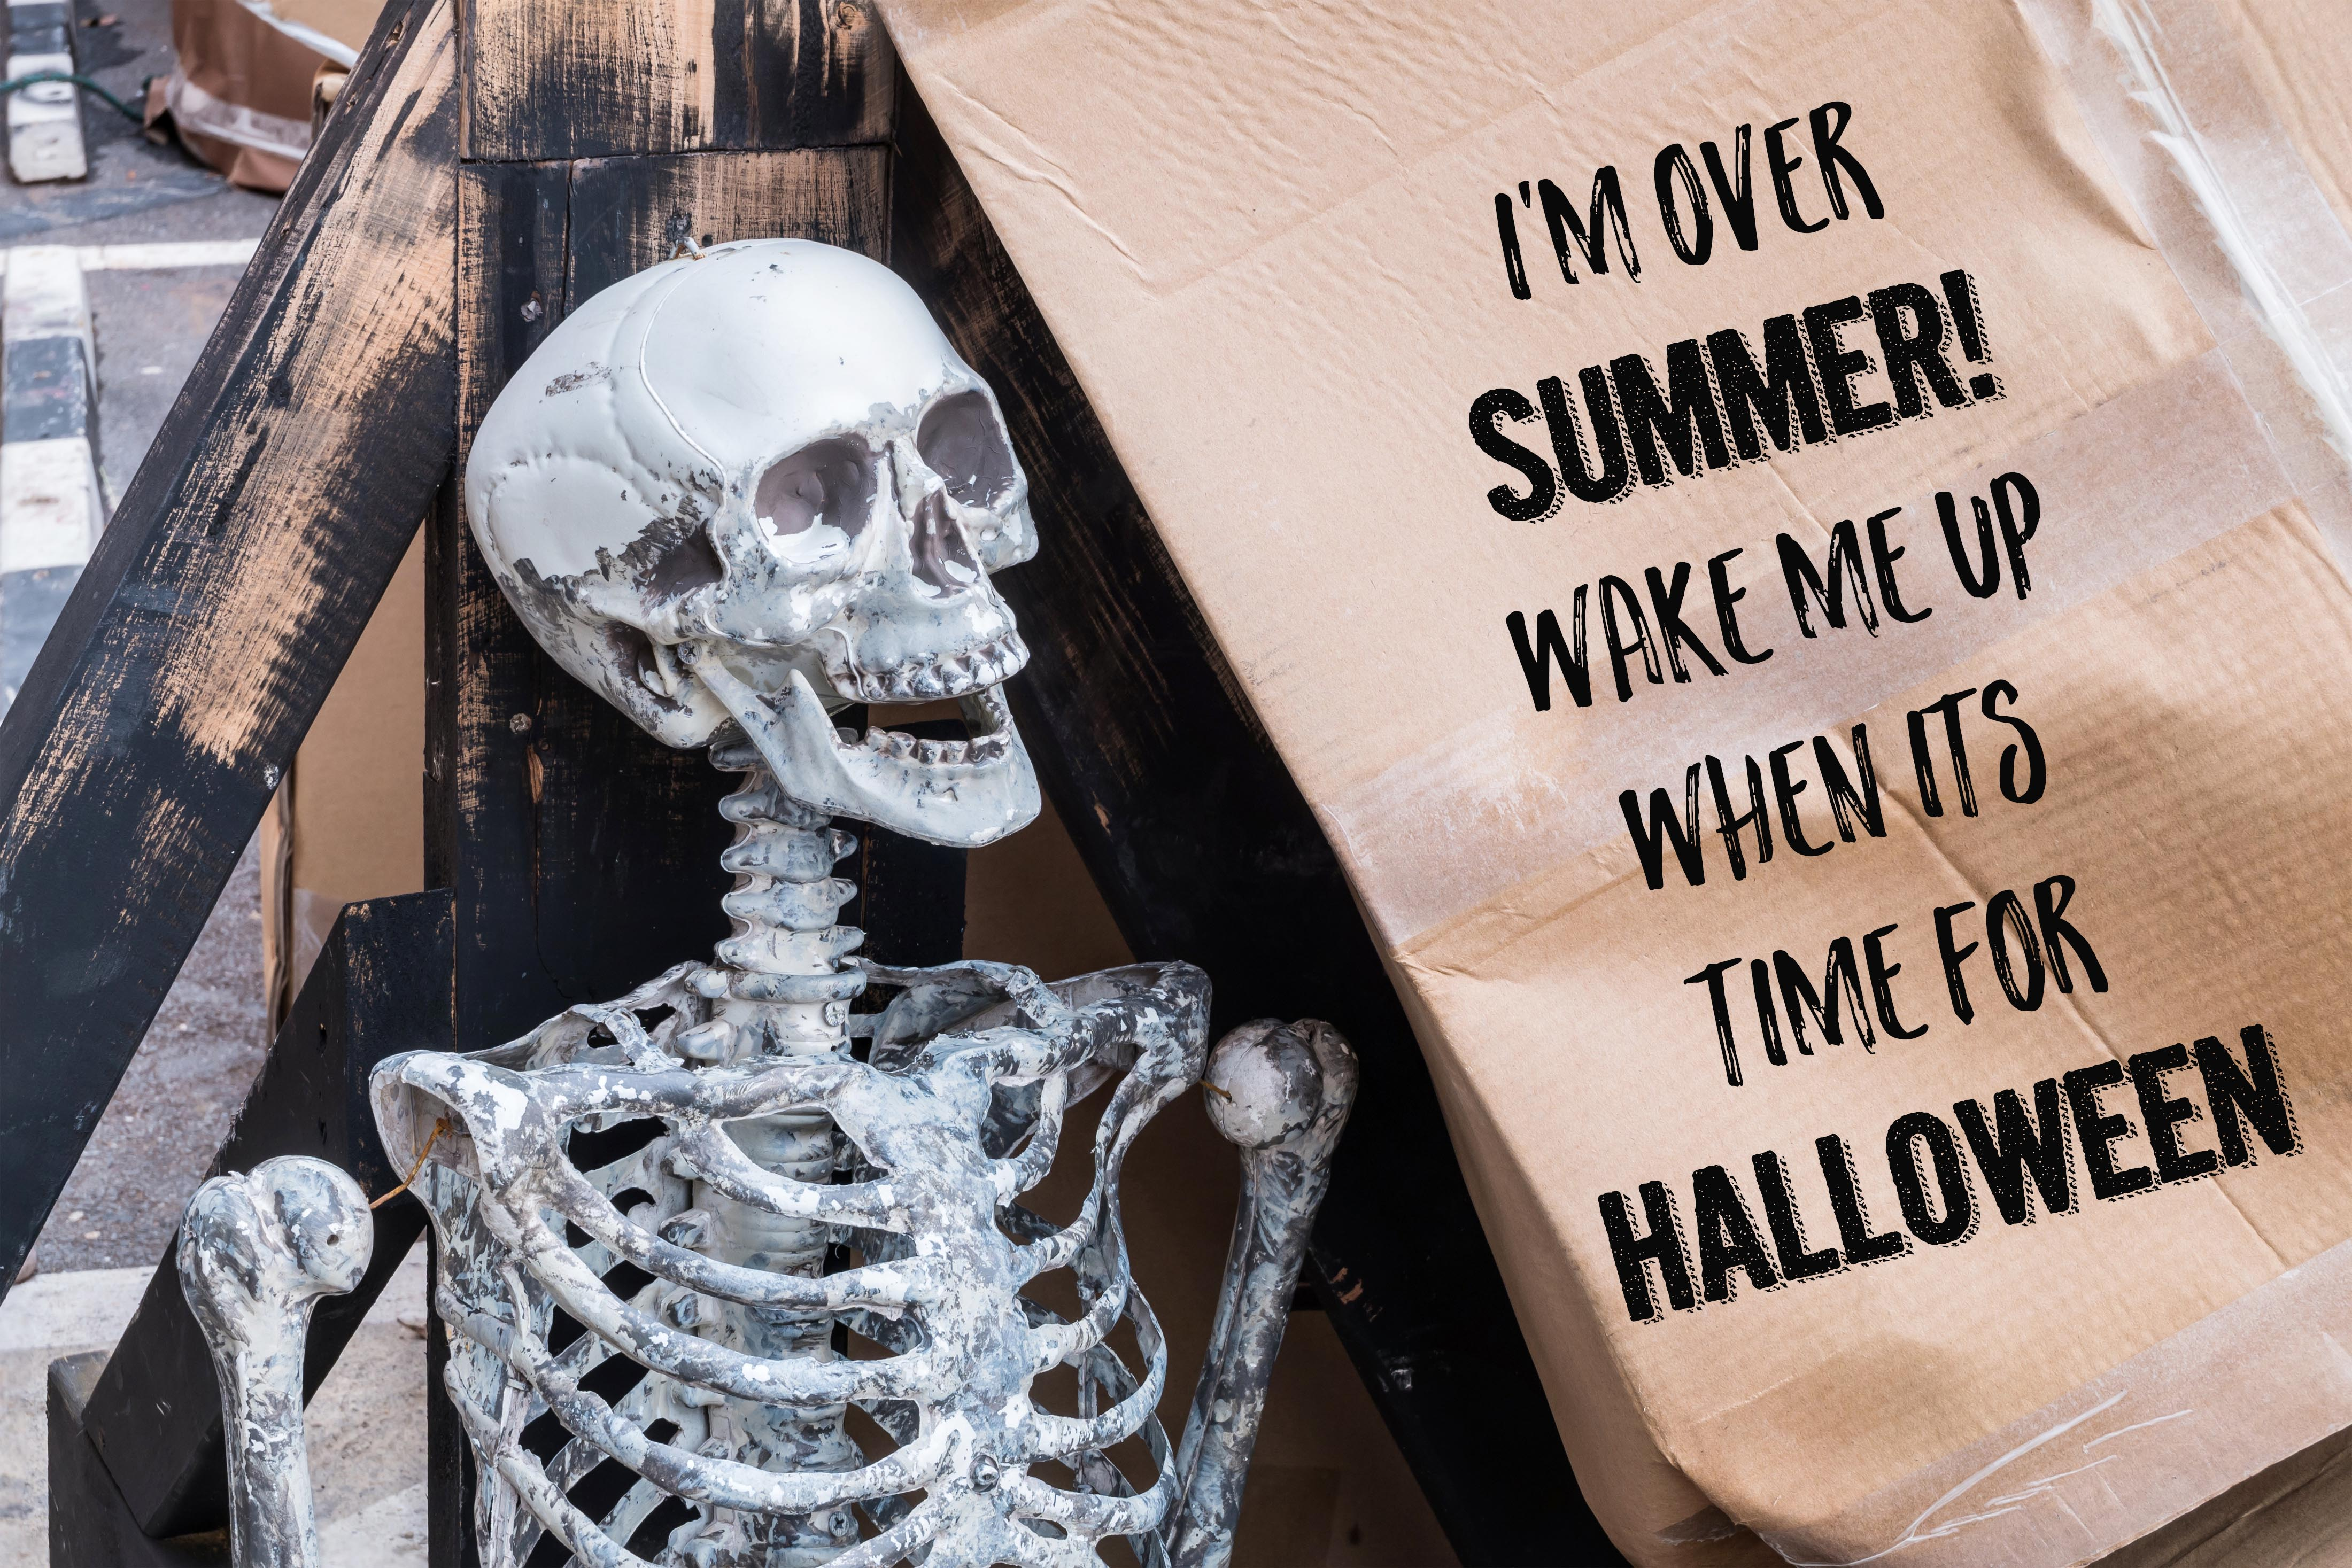 Halloween Memes - Hilarious Pics to Share this Hallow Day